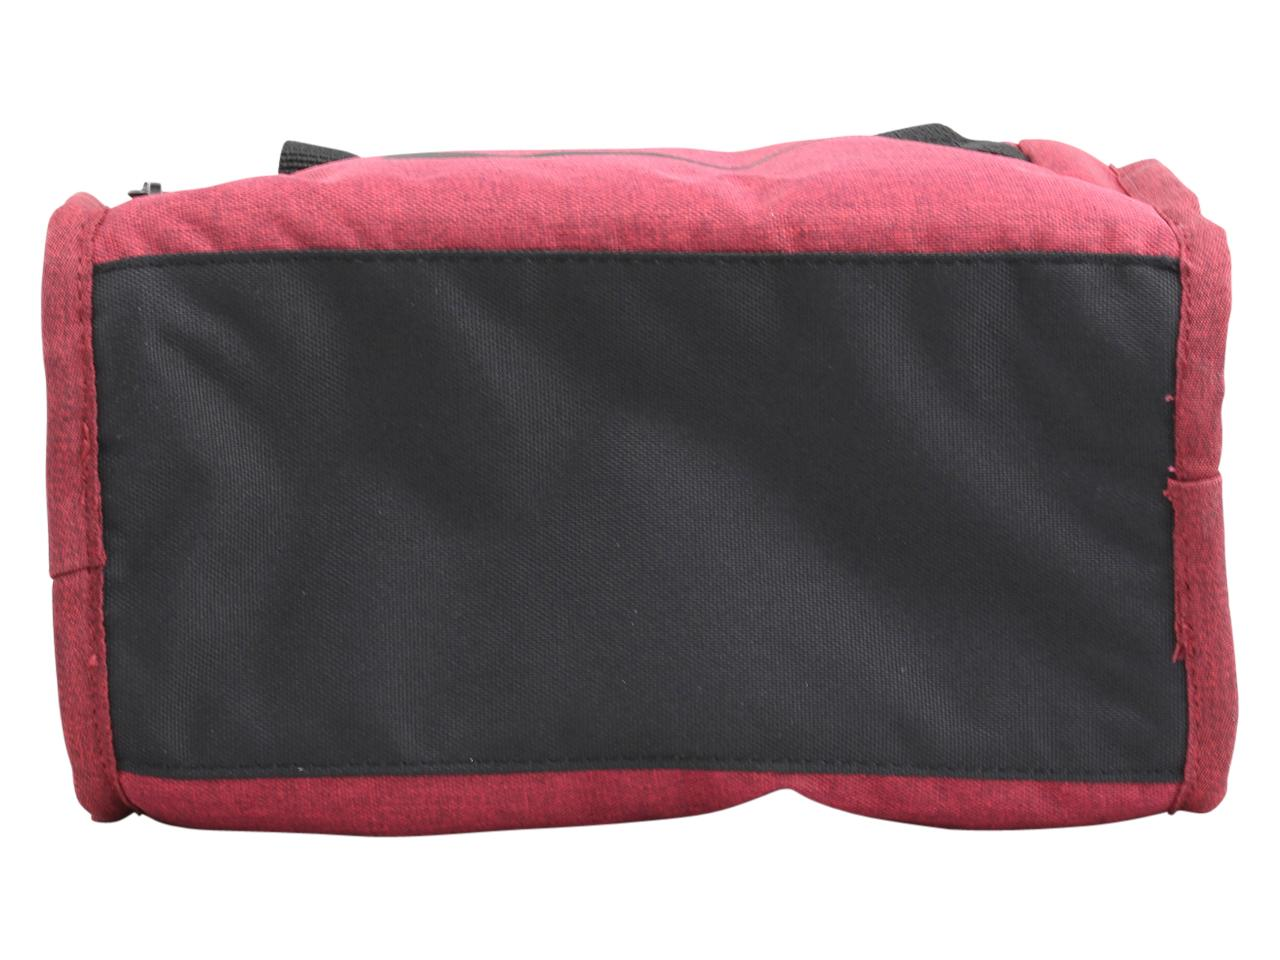 Nike-Deluxe-Insulated-Tote-Lunch-Bag thumbnail 36